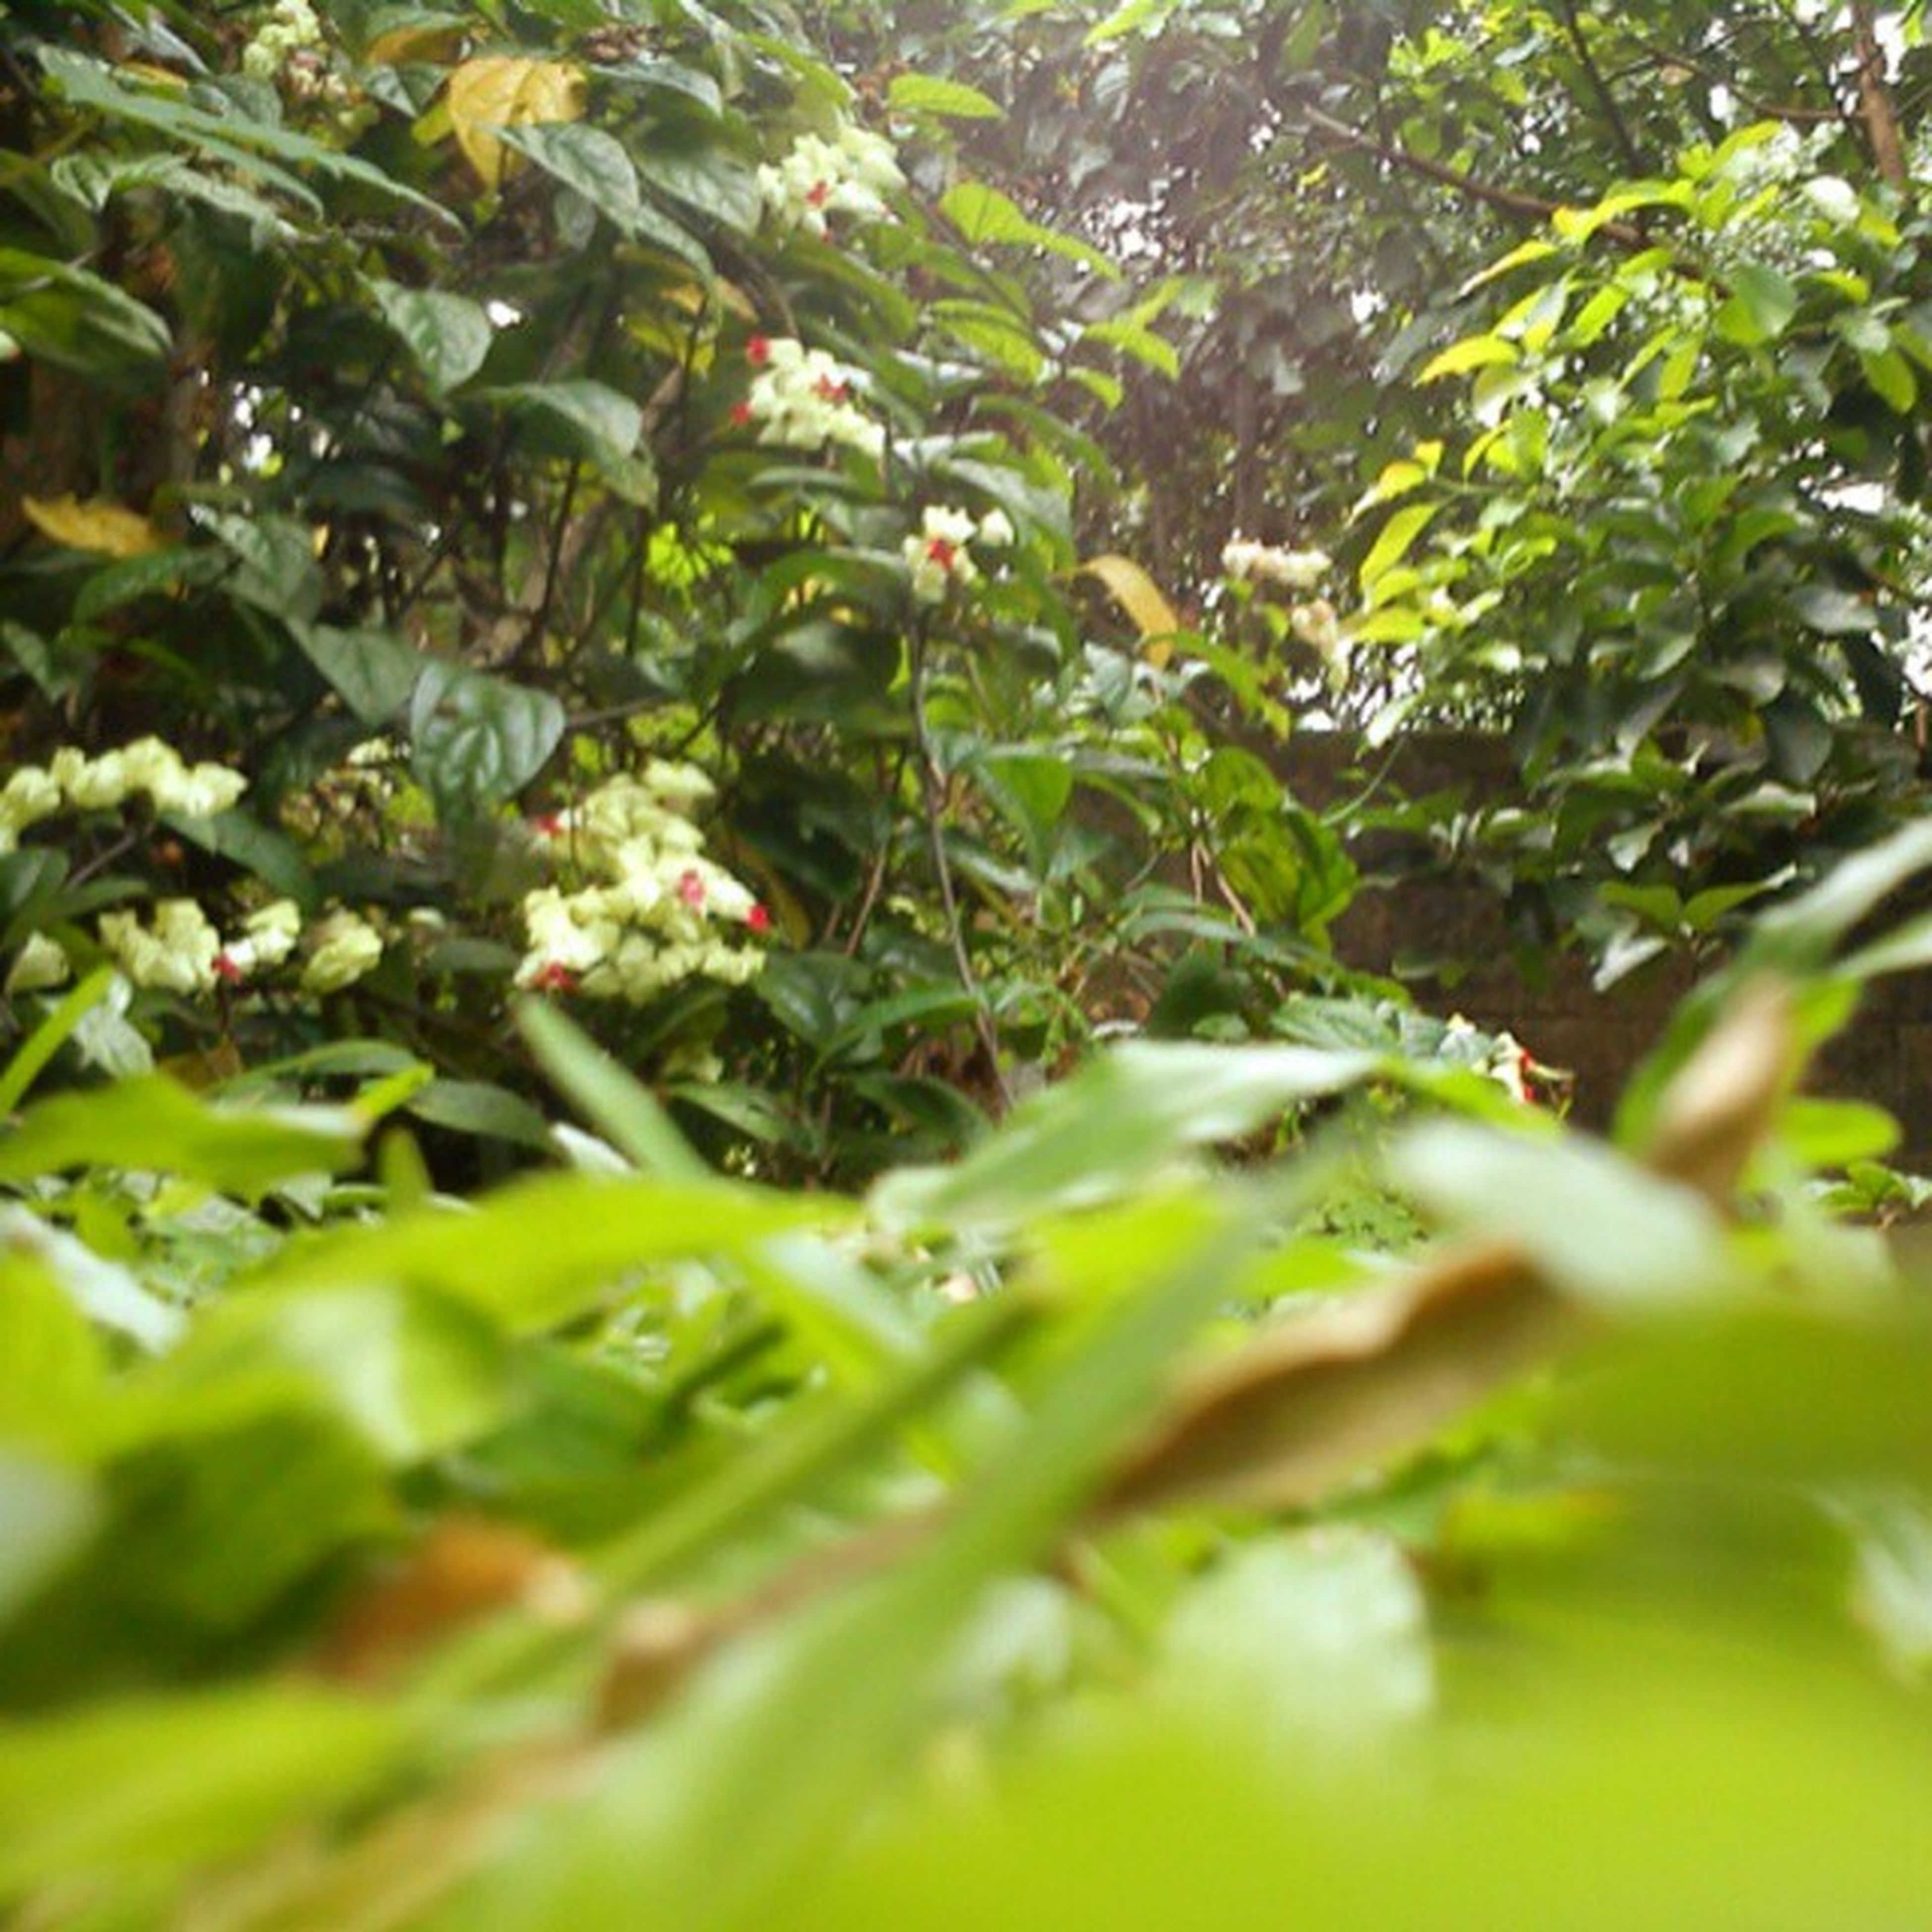 growth, green color, tree, leaf, nature, selective focus, branch, plant, tranquility, beauty in nature, close-up, day, growing, outdoors, no people, freshness, lush foliage, focus on background, green, leaves